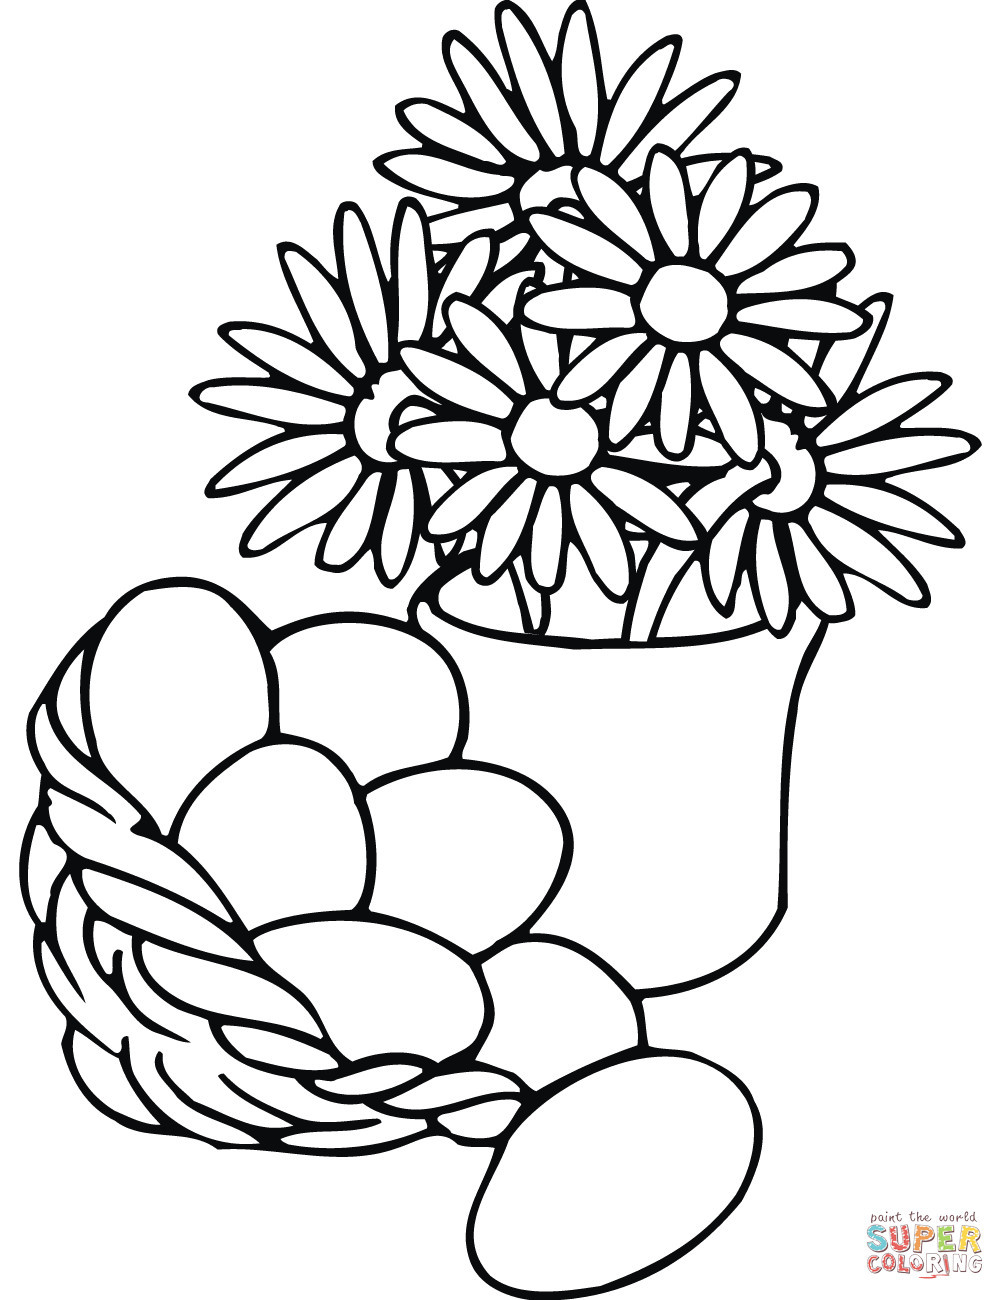 1005x1300 Dantdm Coloring Pages Fresh Floral Coloring Pages Luxury Best